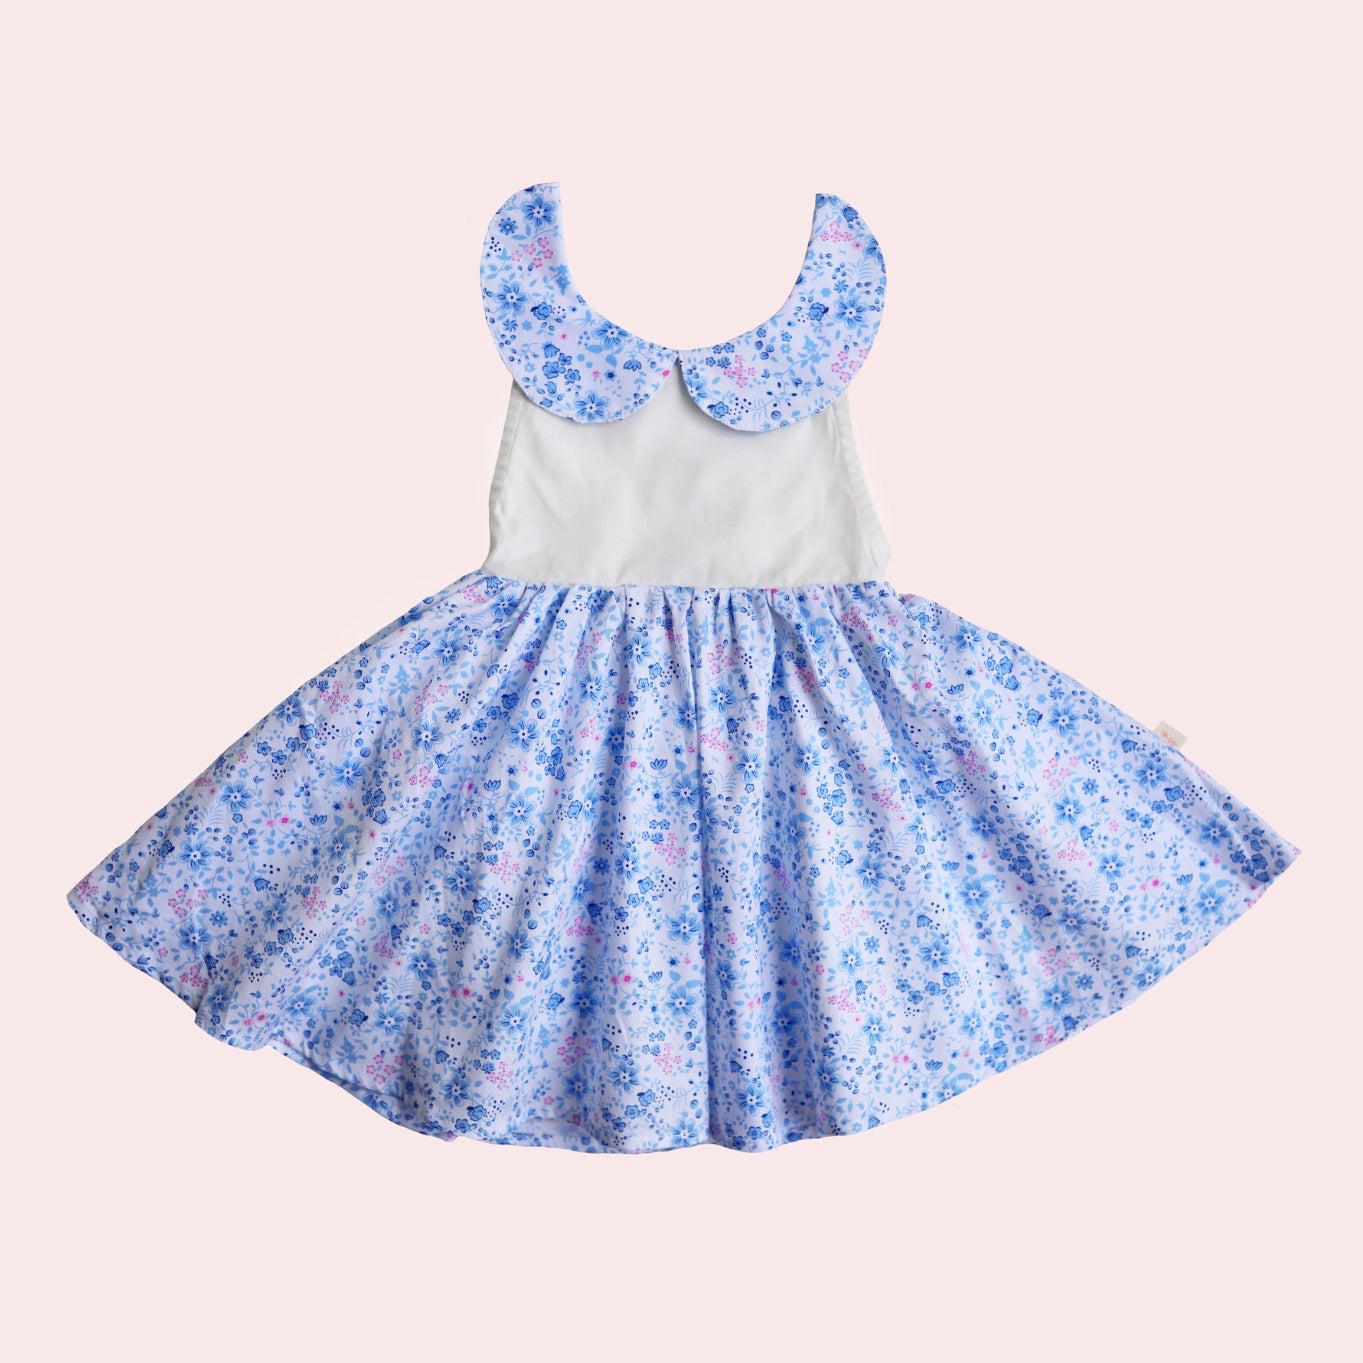 Sweetheart Dress + bow - Madison SUPER LIMITED